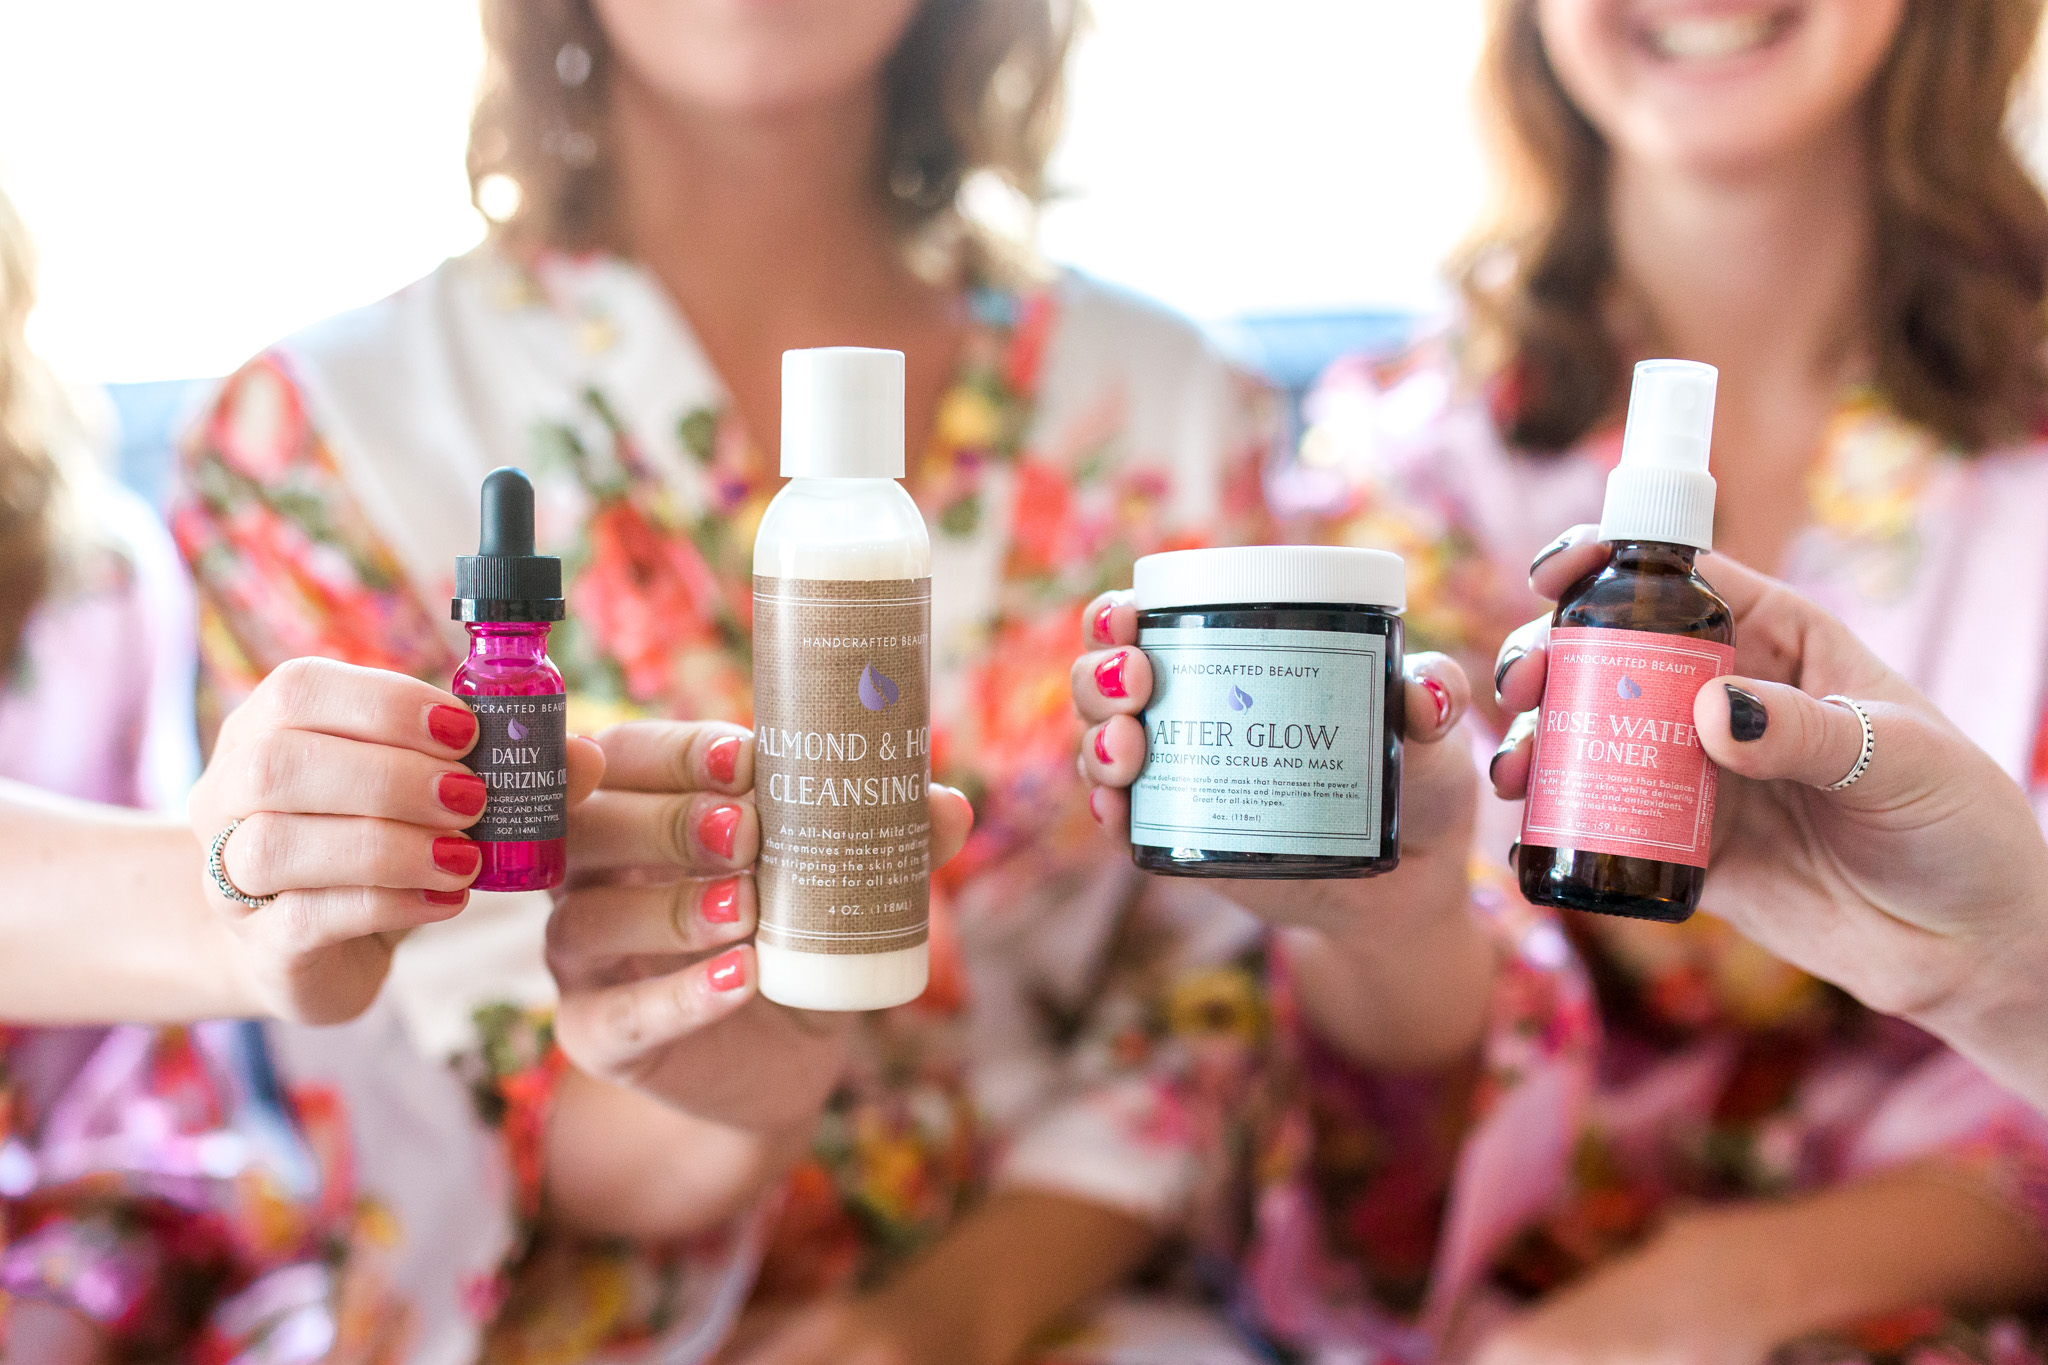 Best friends | Spa Day with Bridal Party | Natural Beauty Products | Floral Robes | Girls Night | Giveaway!